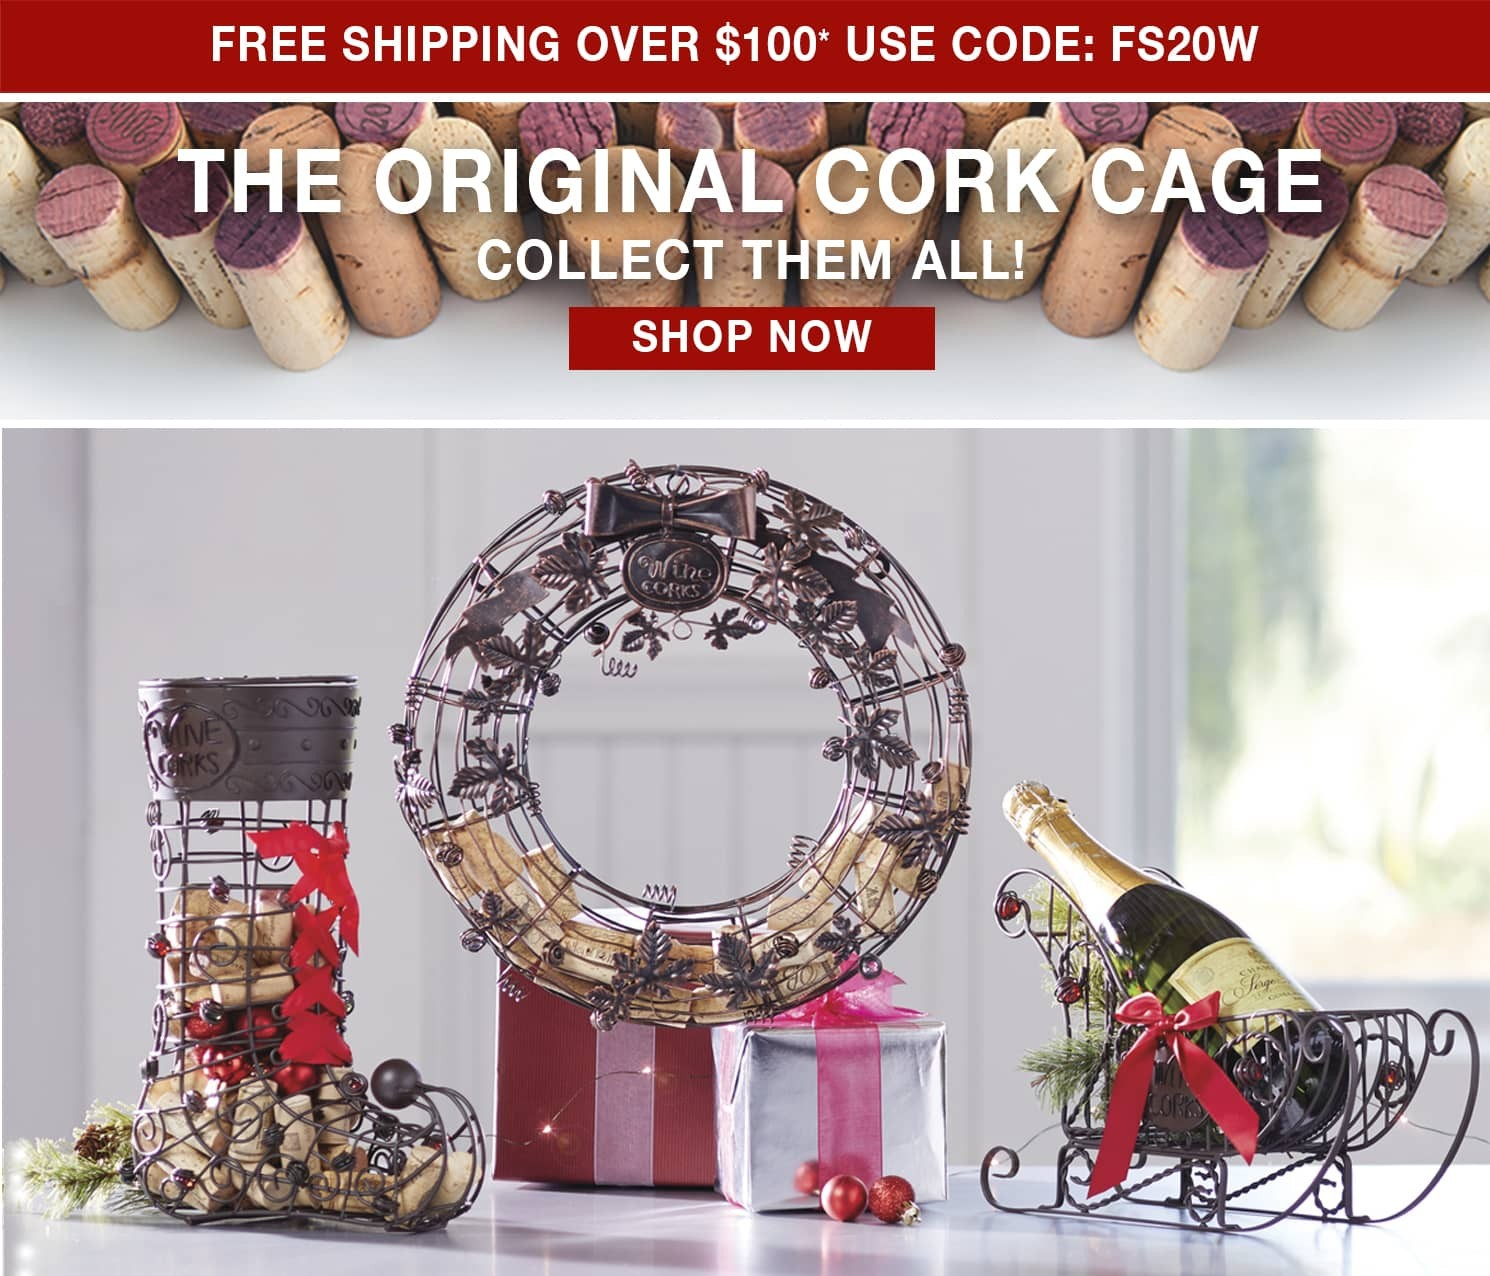 The Original Cork Cage - Free Shipping over $100 use code FS20W